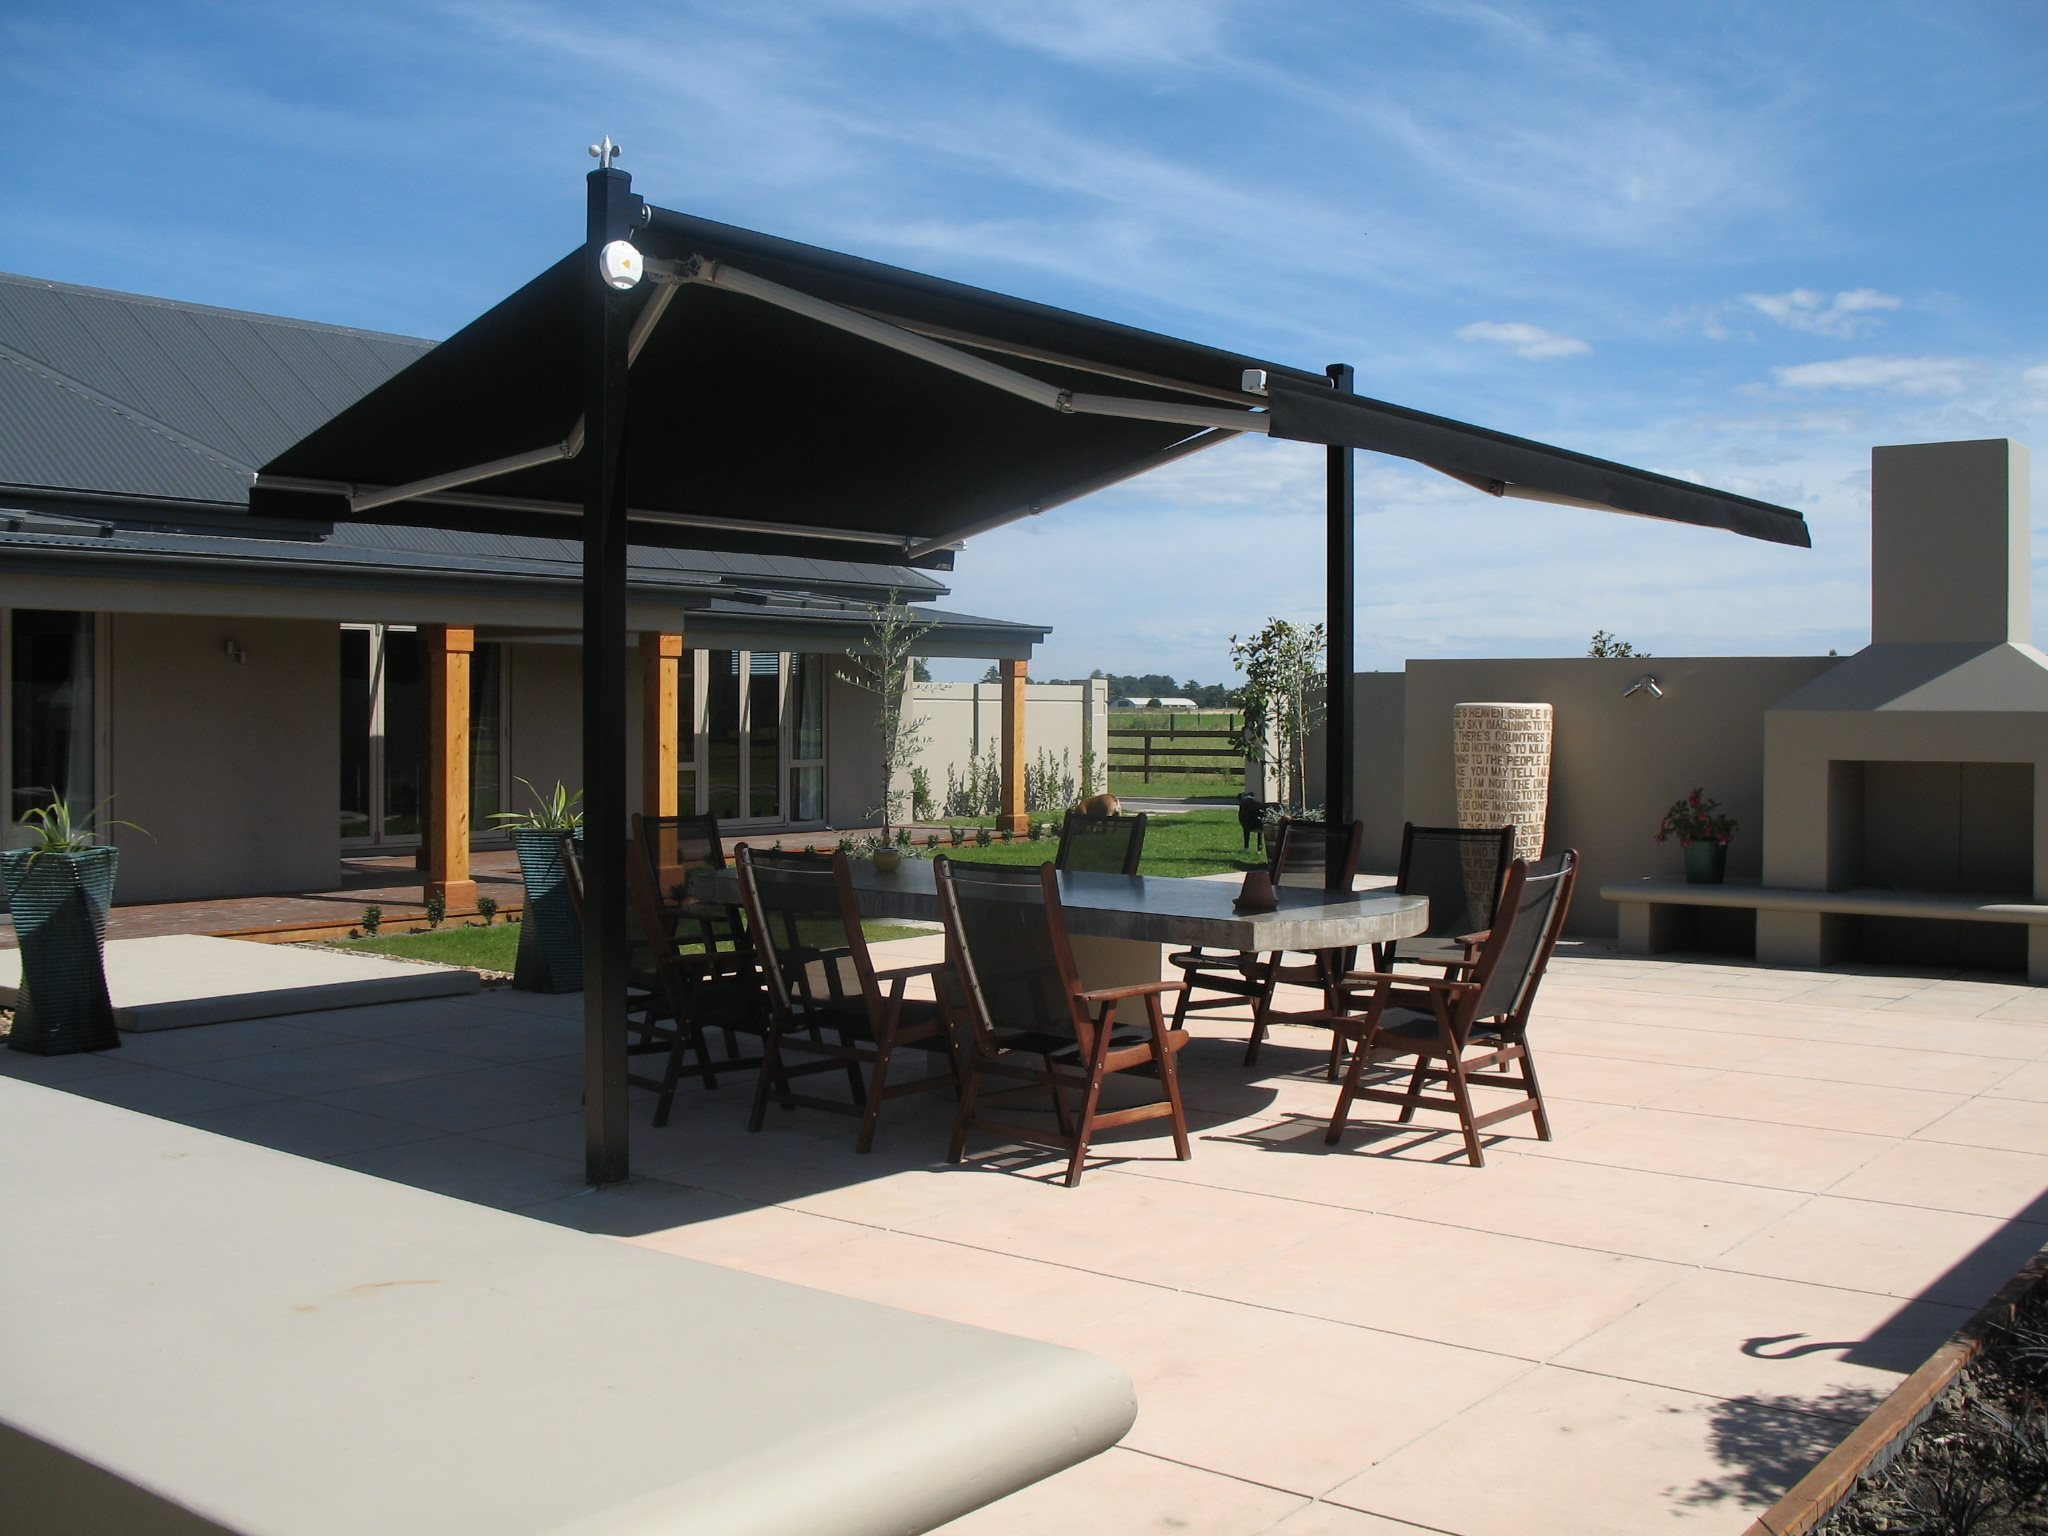 Outdoor canopy open over outdoor dining table